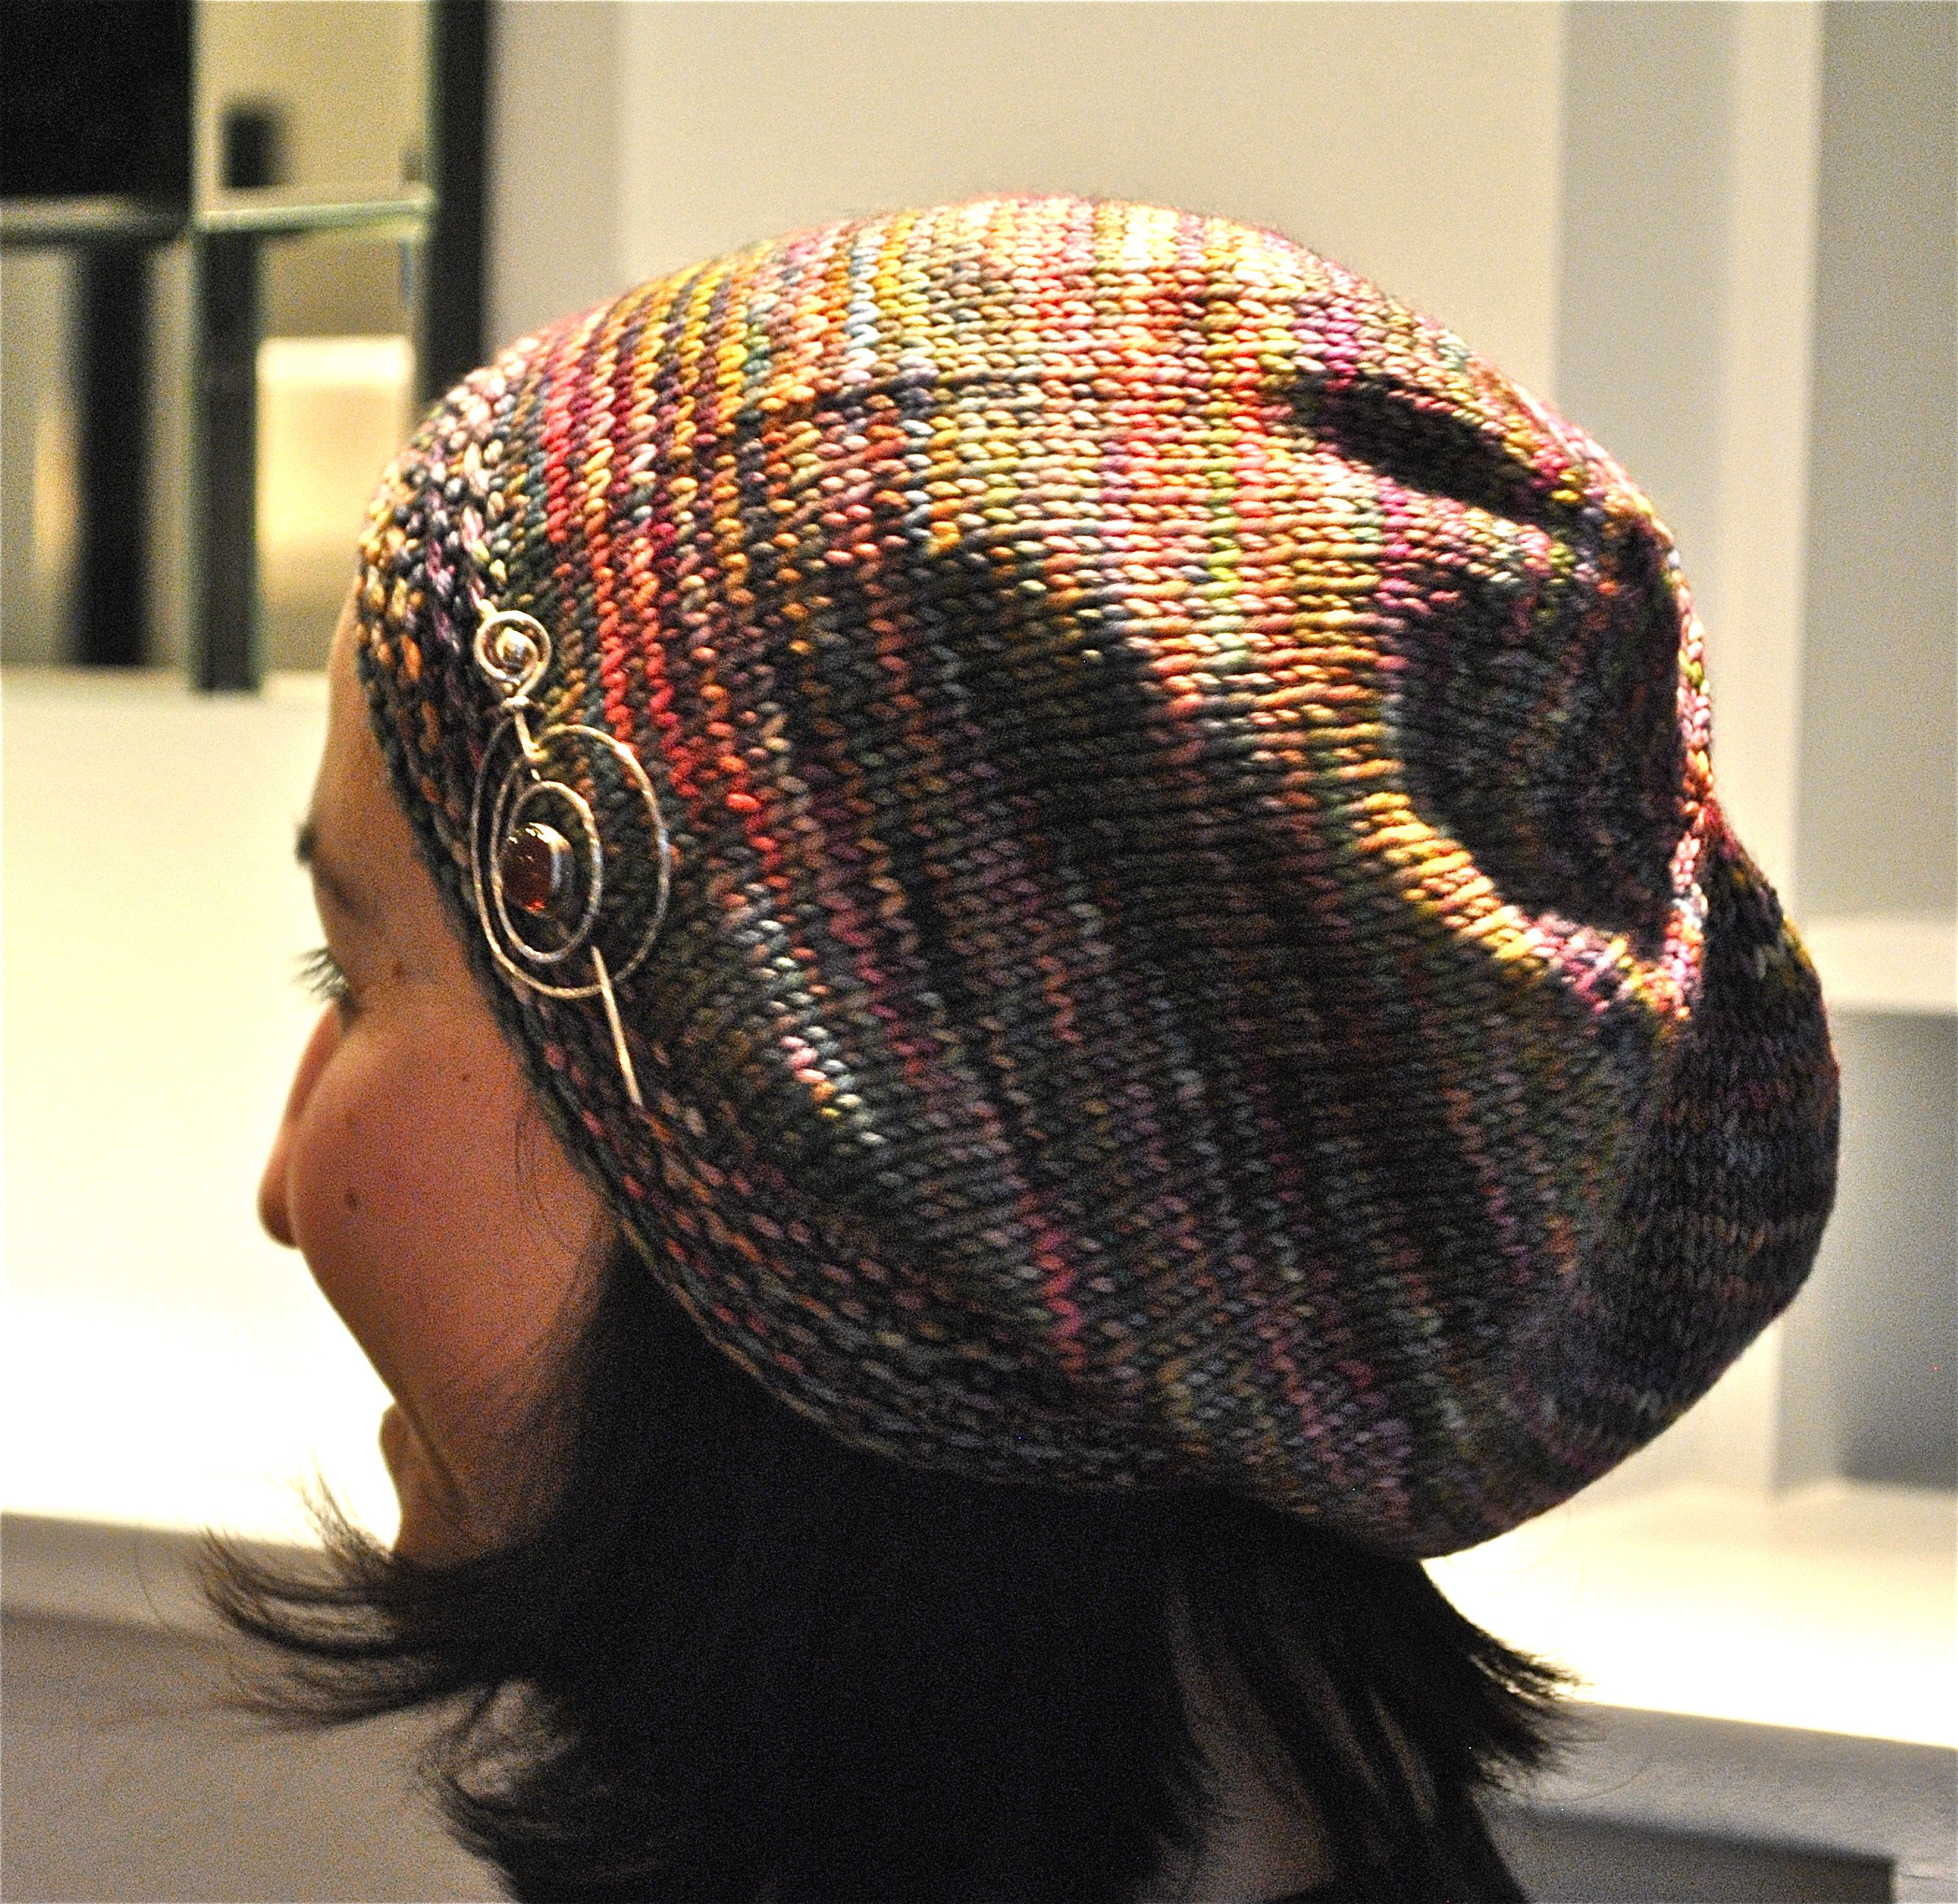 532a2a5f4ca Knit Night Hat pattern (free pattern on Ravelry) - went totally crazy and  made this hat out of every Berroco Vintage Colors shade the yarn shop had